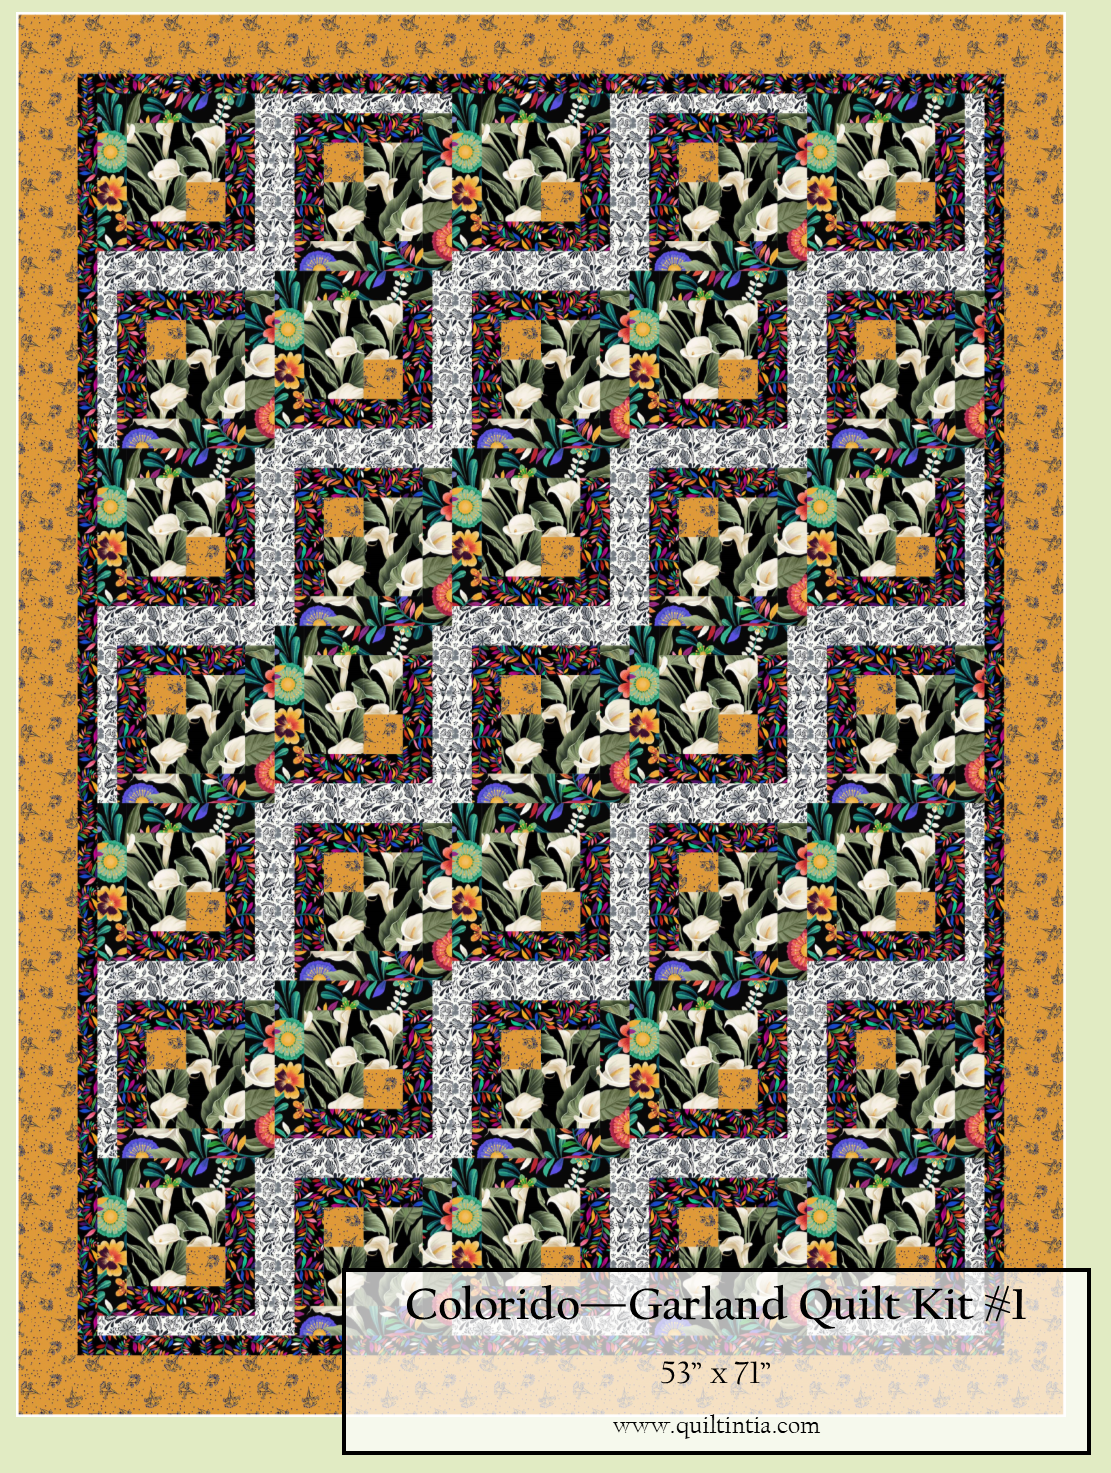 Colorido - Garland Quilt Kit #1